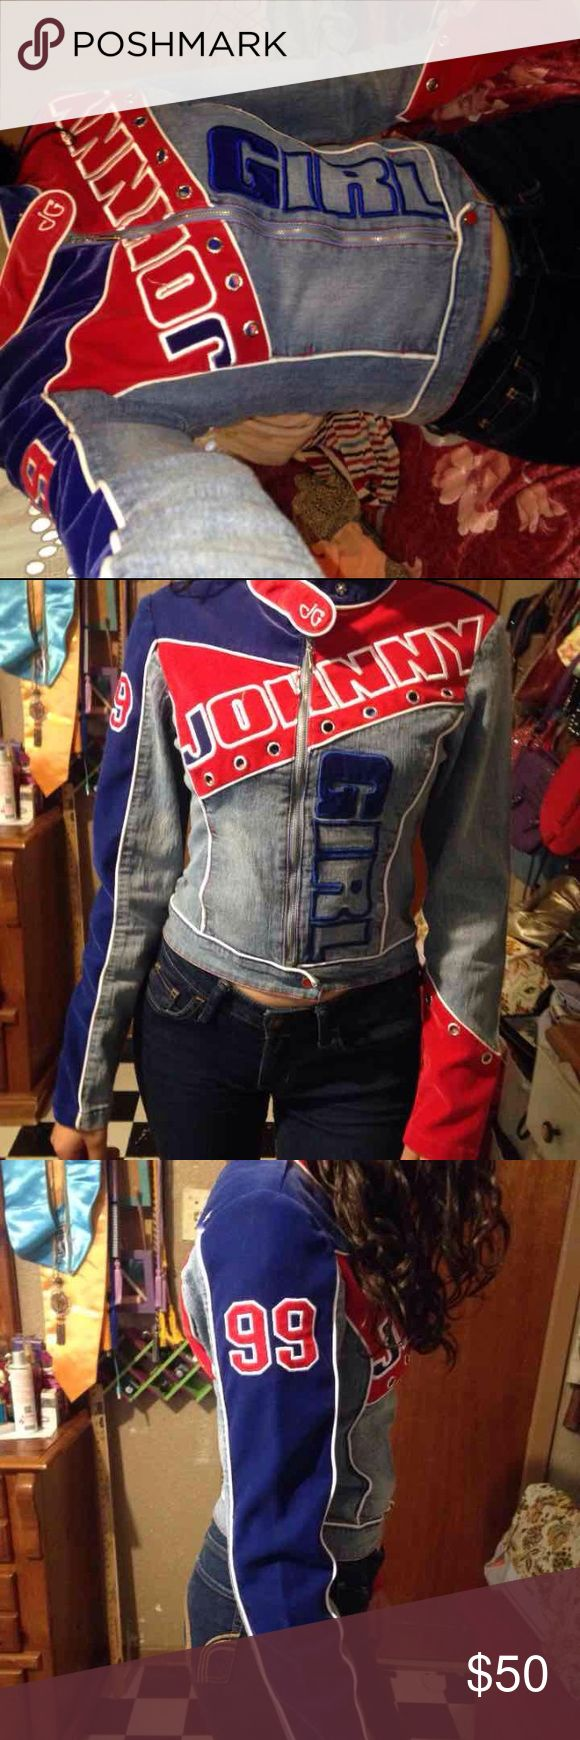 Johnny girl jacket Vintage jacket Leather and a suede material Size small Excellent condition #johnnygirl #jeanjacket #denimjacket #motorcyclejacket #motorcycle #nascarjacket #nascar #vintage #vintagejacket johnny girl Jackets & Coats Jean Jackets